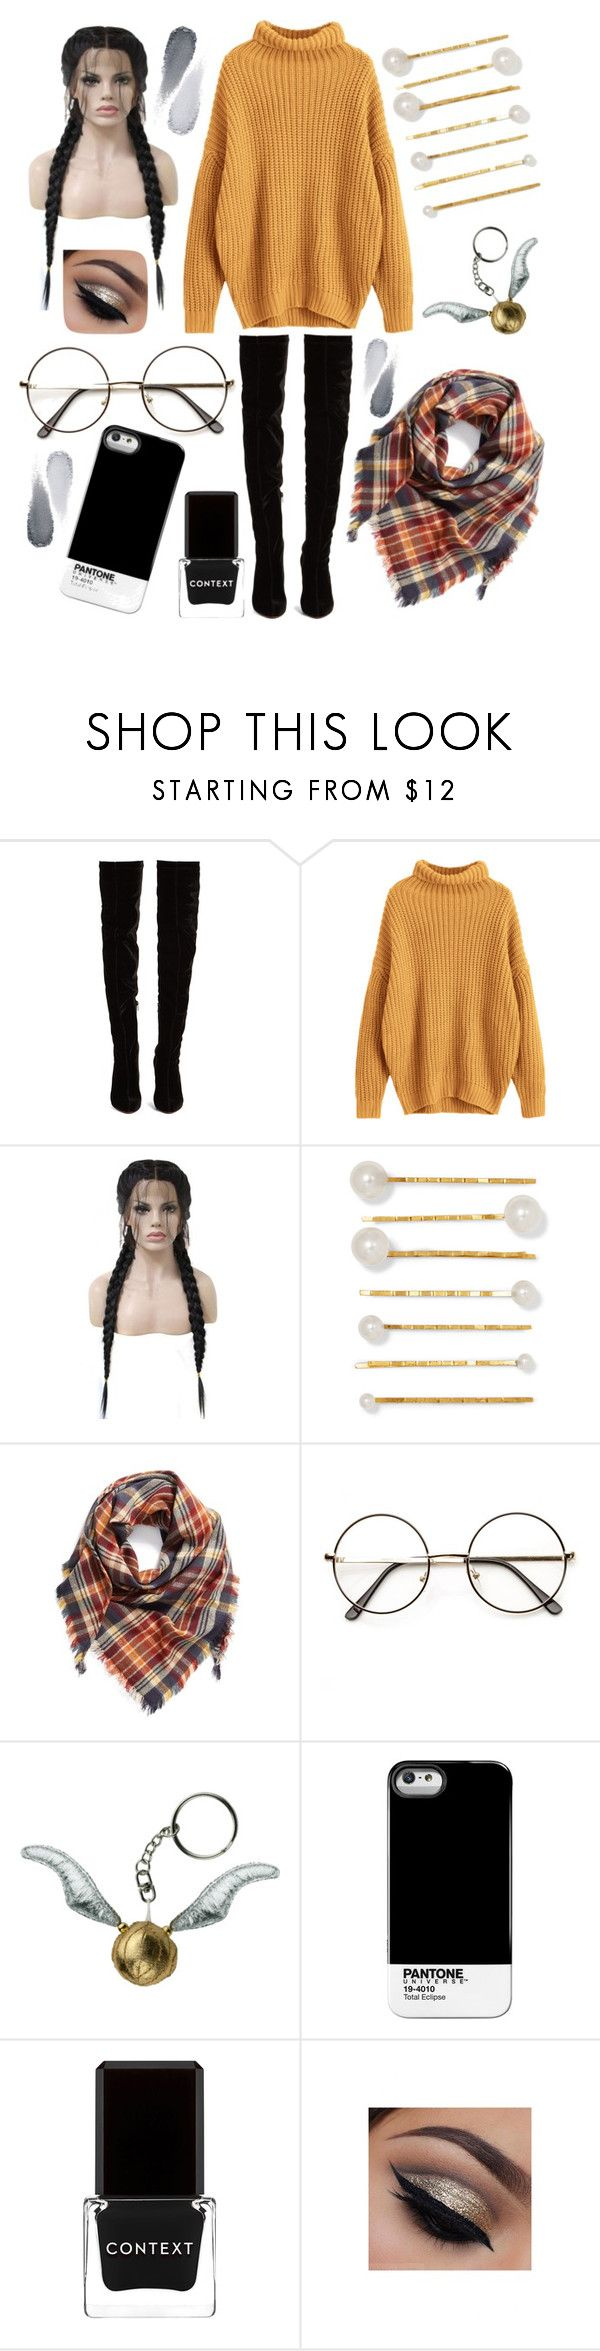 """""""Untitled #438"""" by hampster12 ❤ liked on Polyvore featuring Christian Louboutin, WithChic, Jennifer Behr, BP., Pantone Universe, Context and Clé de Peau Beauté"""